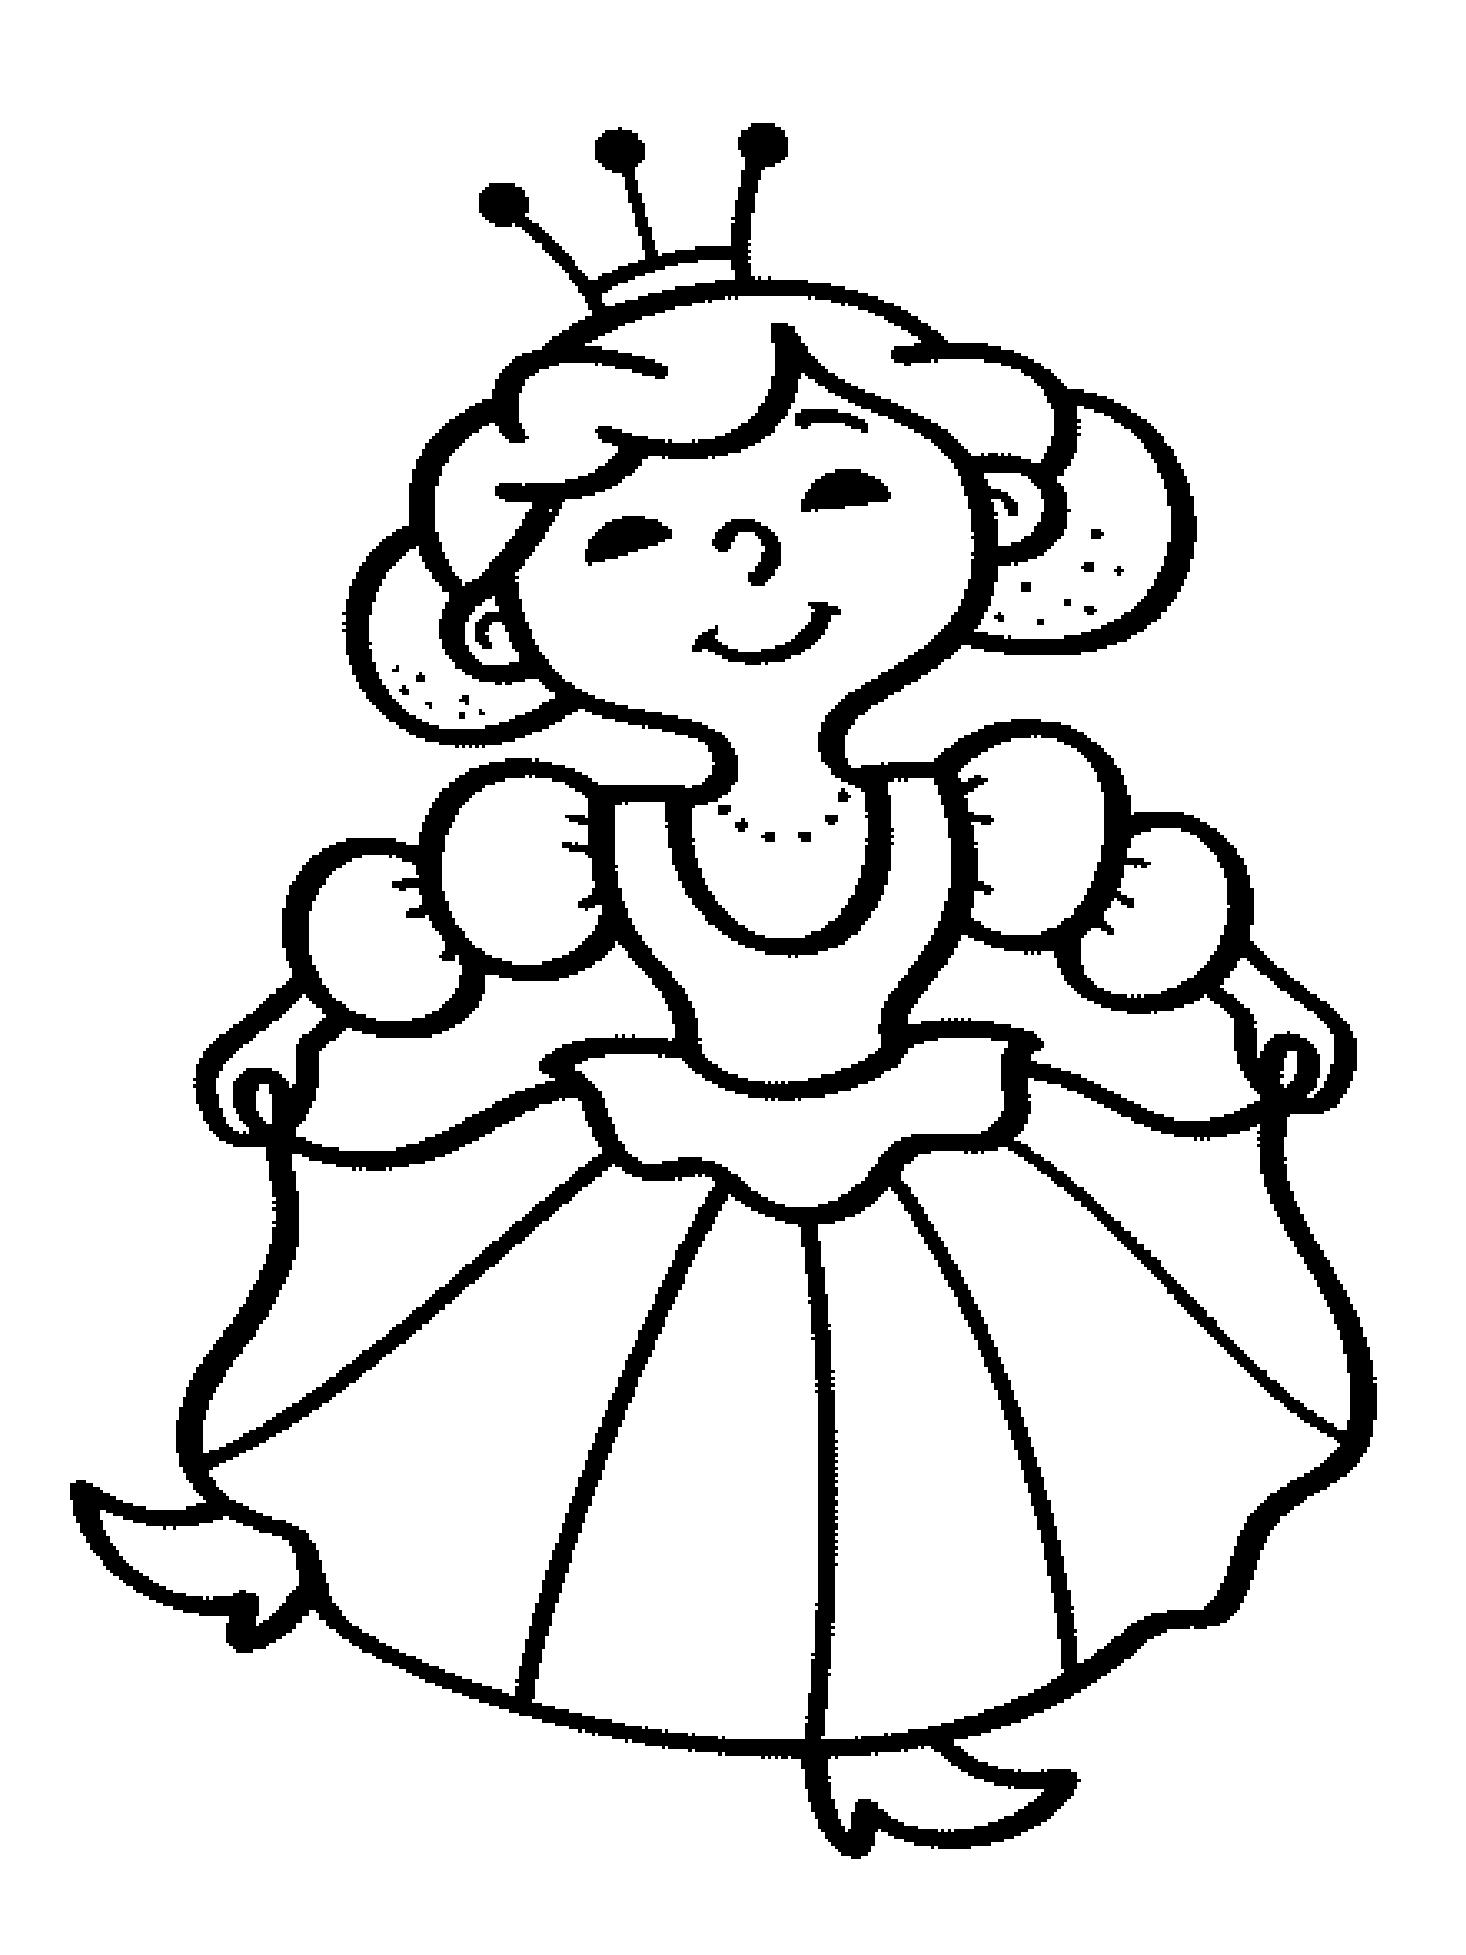 fairy tale coloring pages coloring pages for adults coloring clipart best clipart best. Black Bedroom Furniture Sets. Home Design Ideas